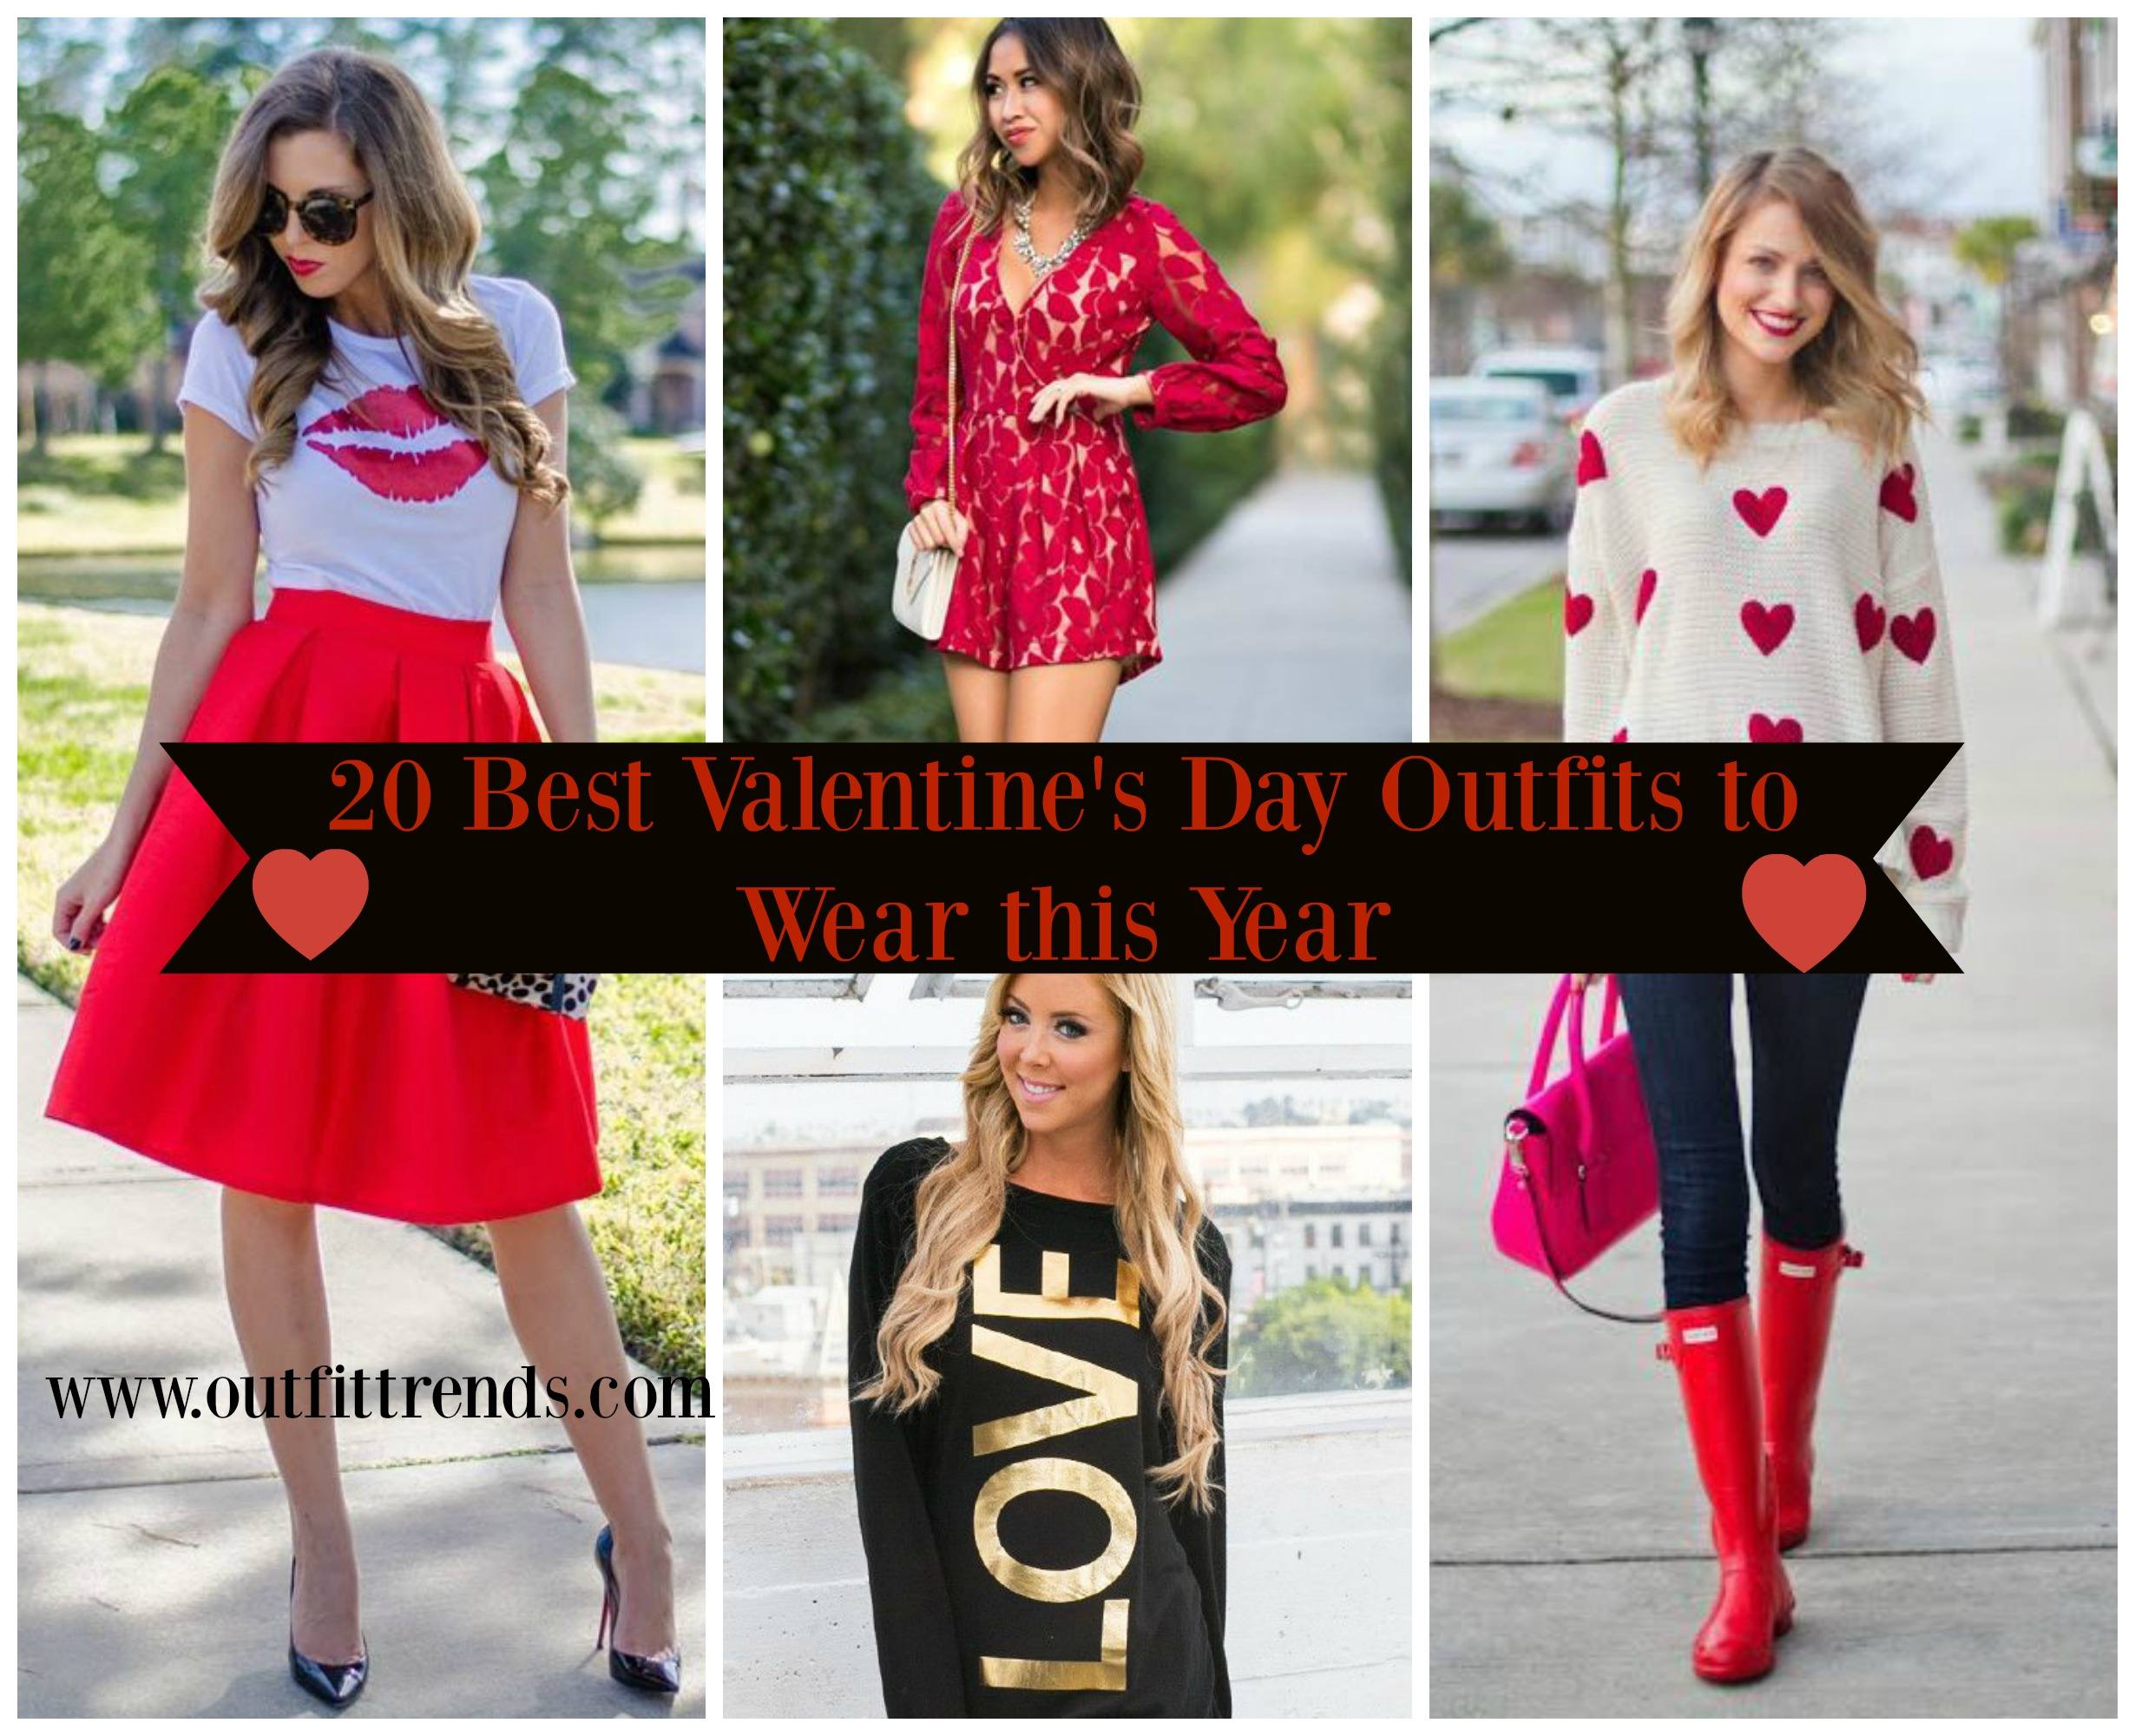 a2cce87ea03 Top 20 Amazing Outfits Ideas For Valentine s Day 2017 - Cheap Casual Dress  Fashion Tips For Men or Women